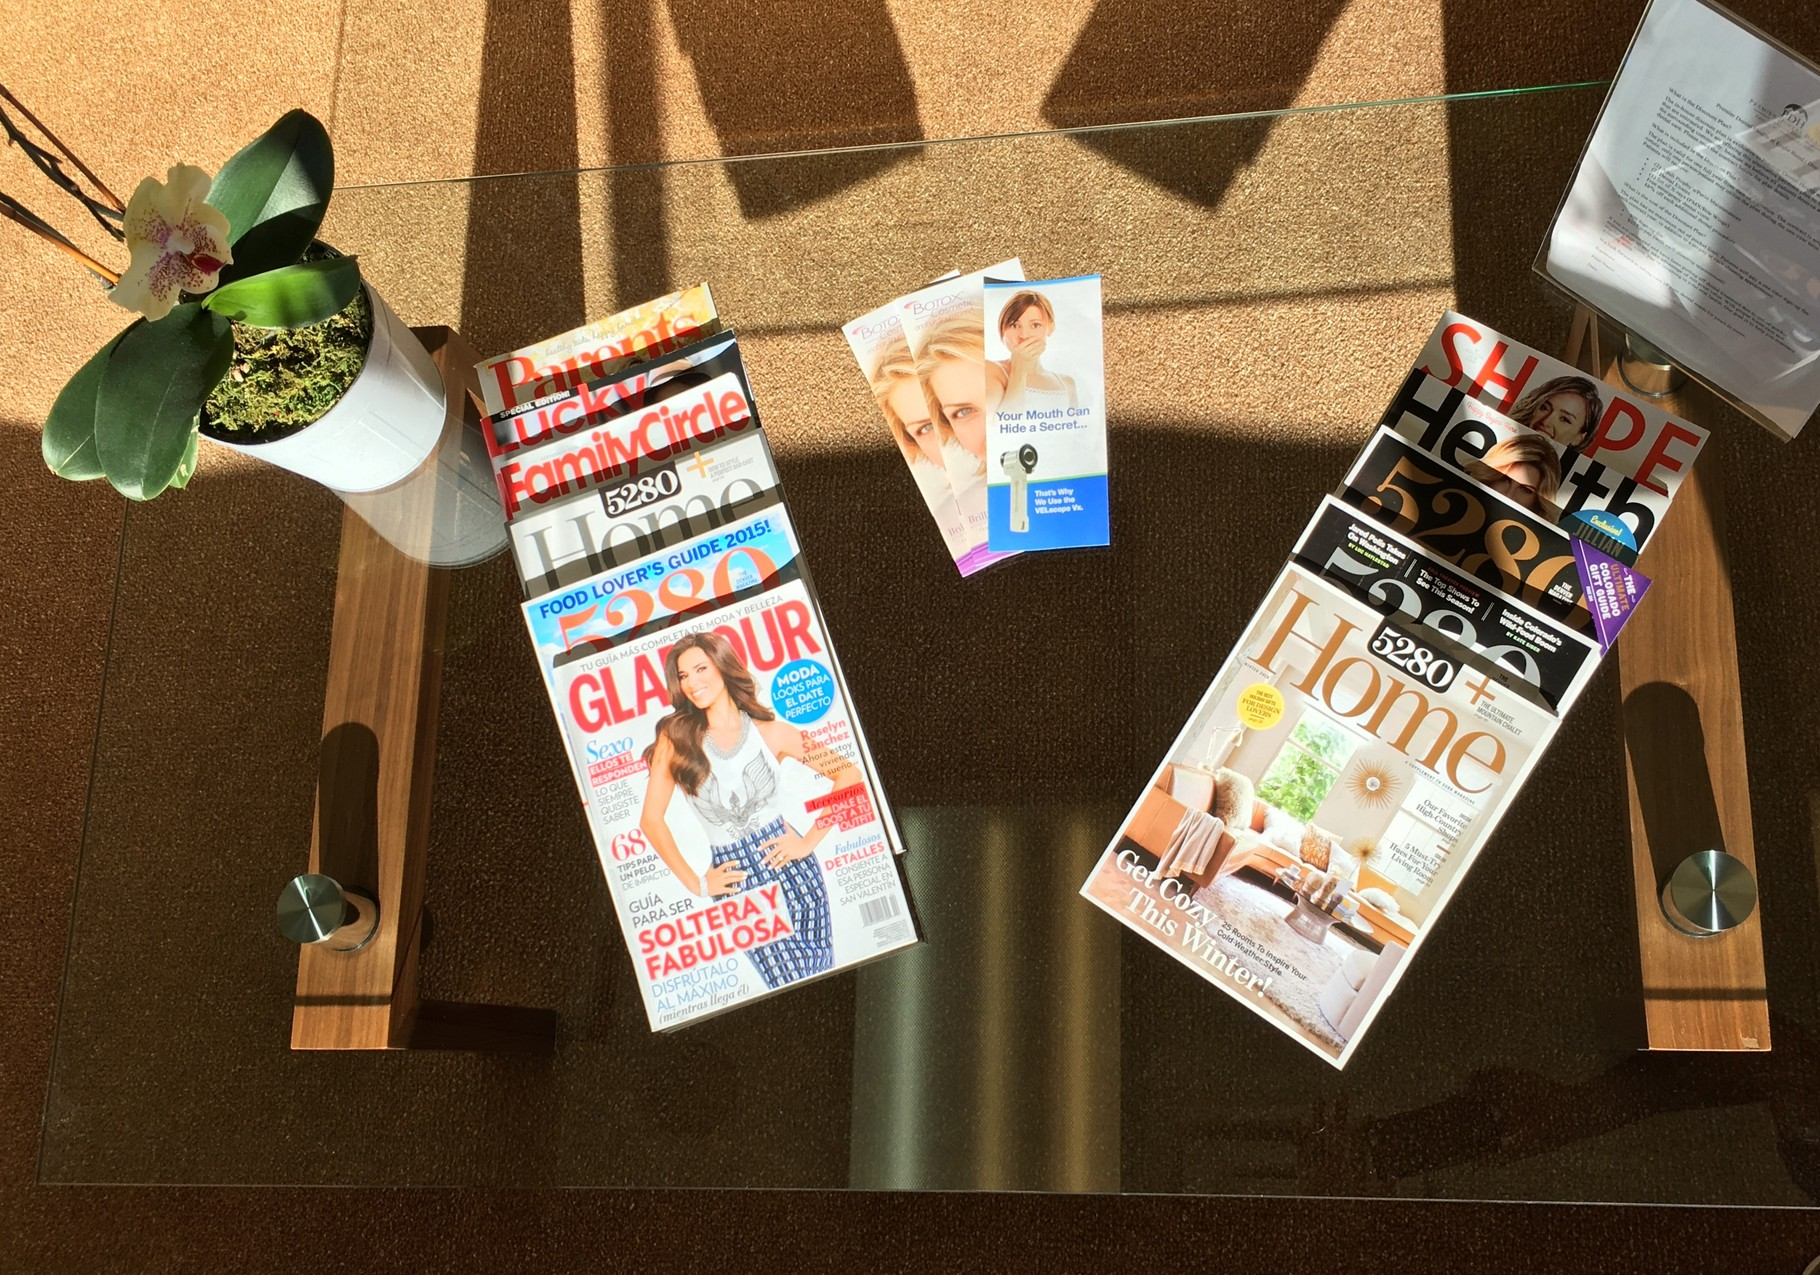 Lobby | Relax and enjoy your visit with magazines, filtered water, and Wifi